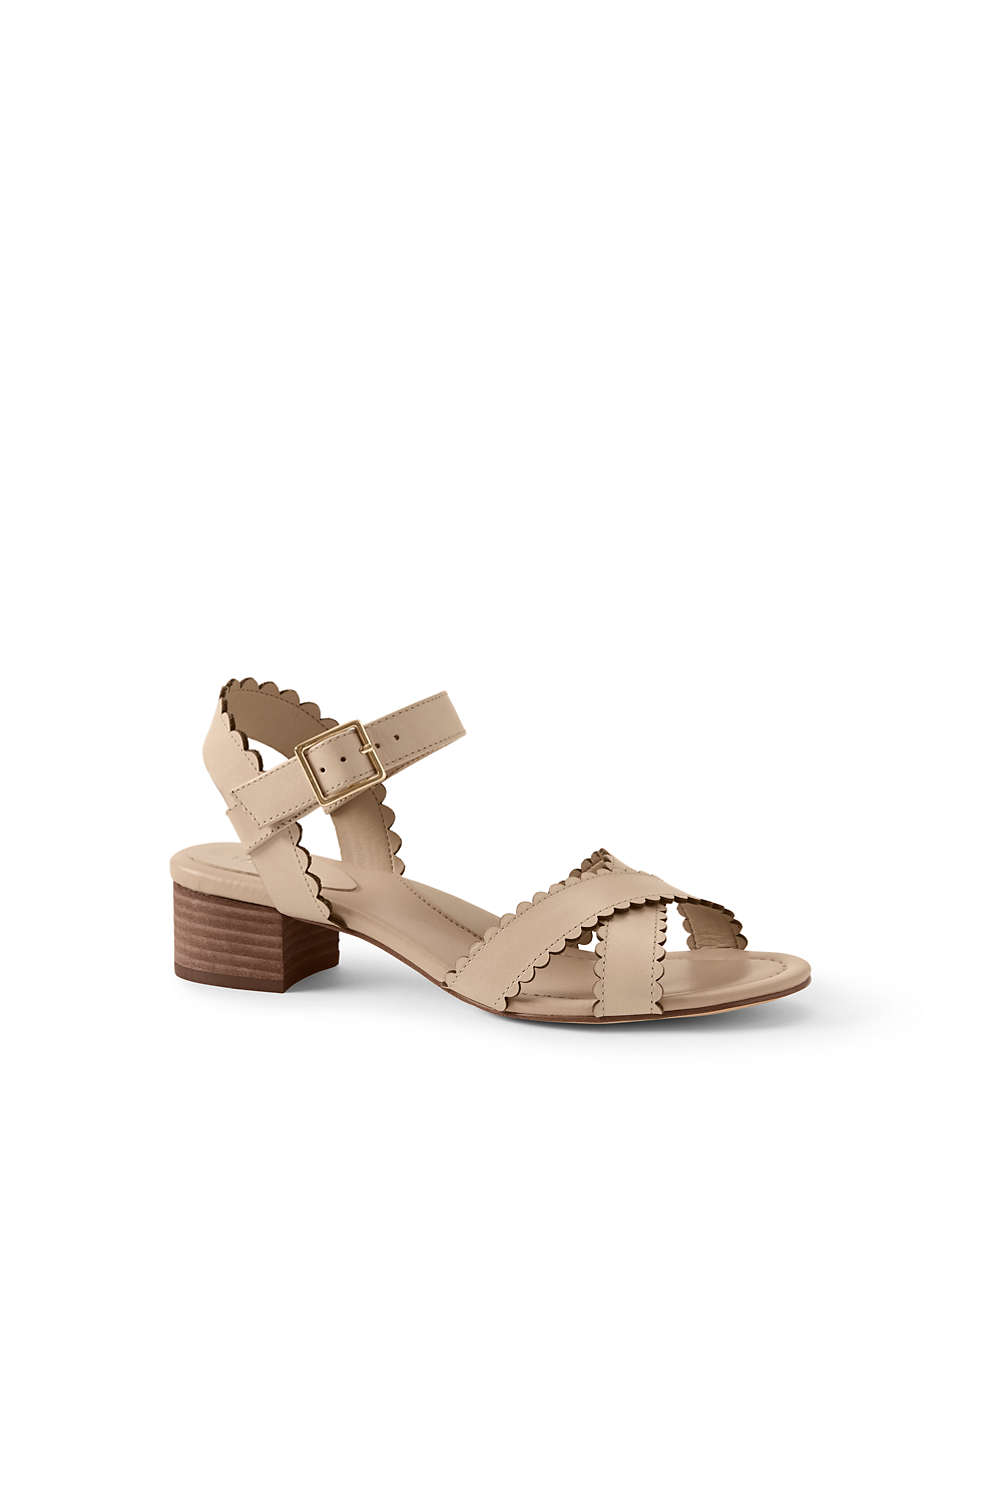 0a4bfbf7e6ef Women's Heeled Scallop Sandals from Lands' End